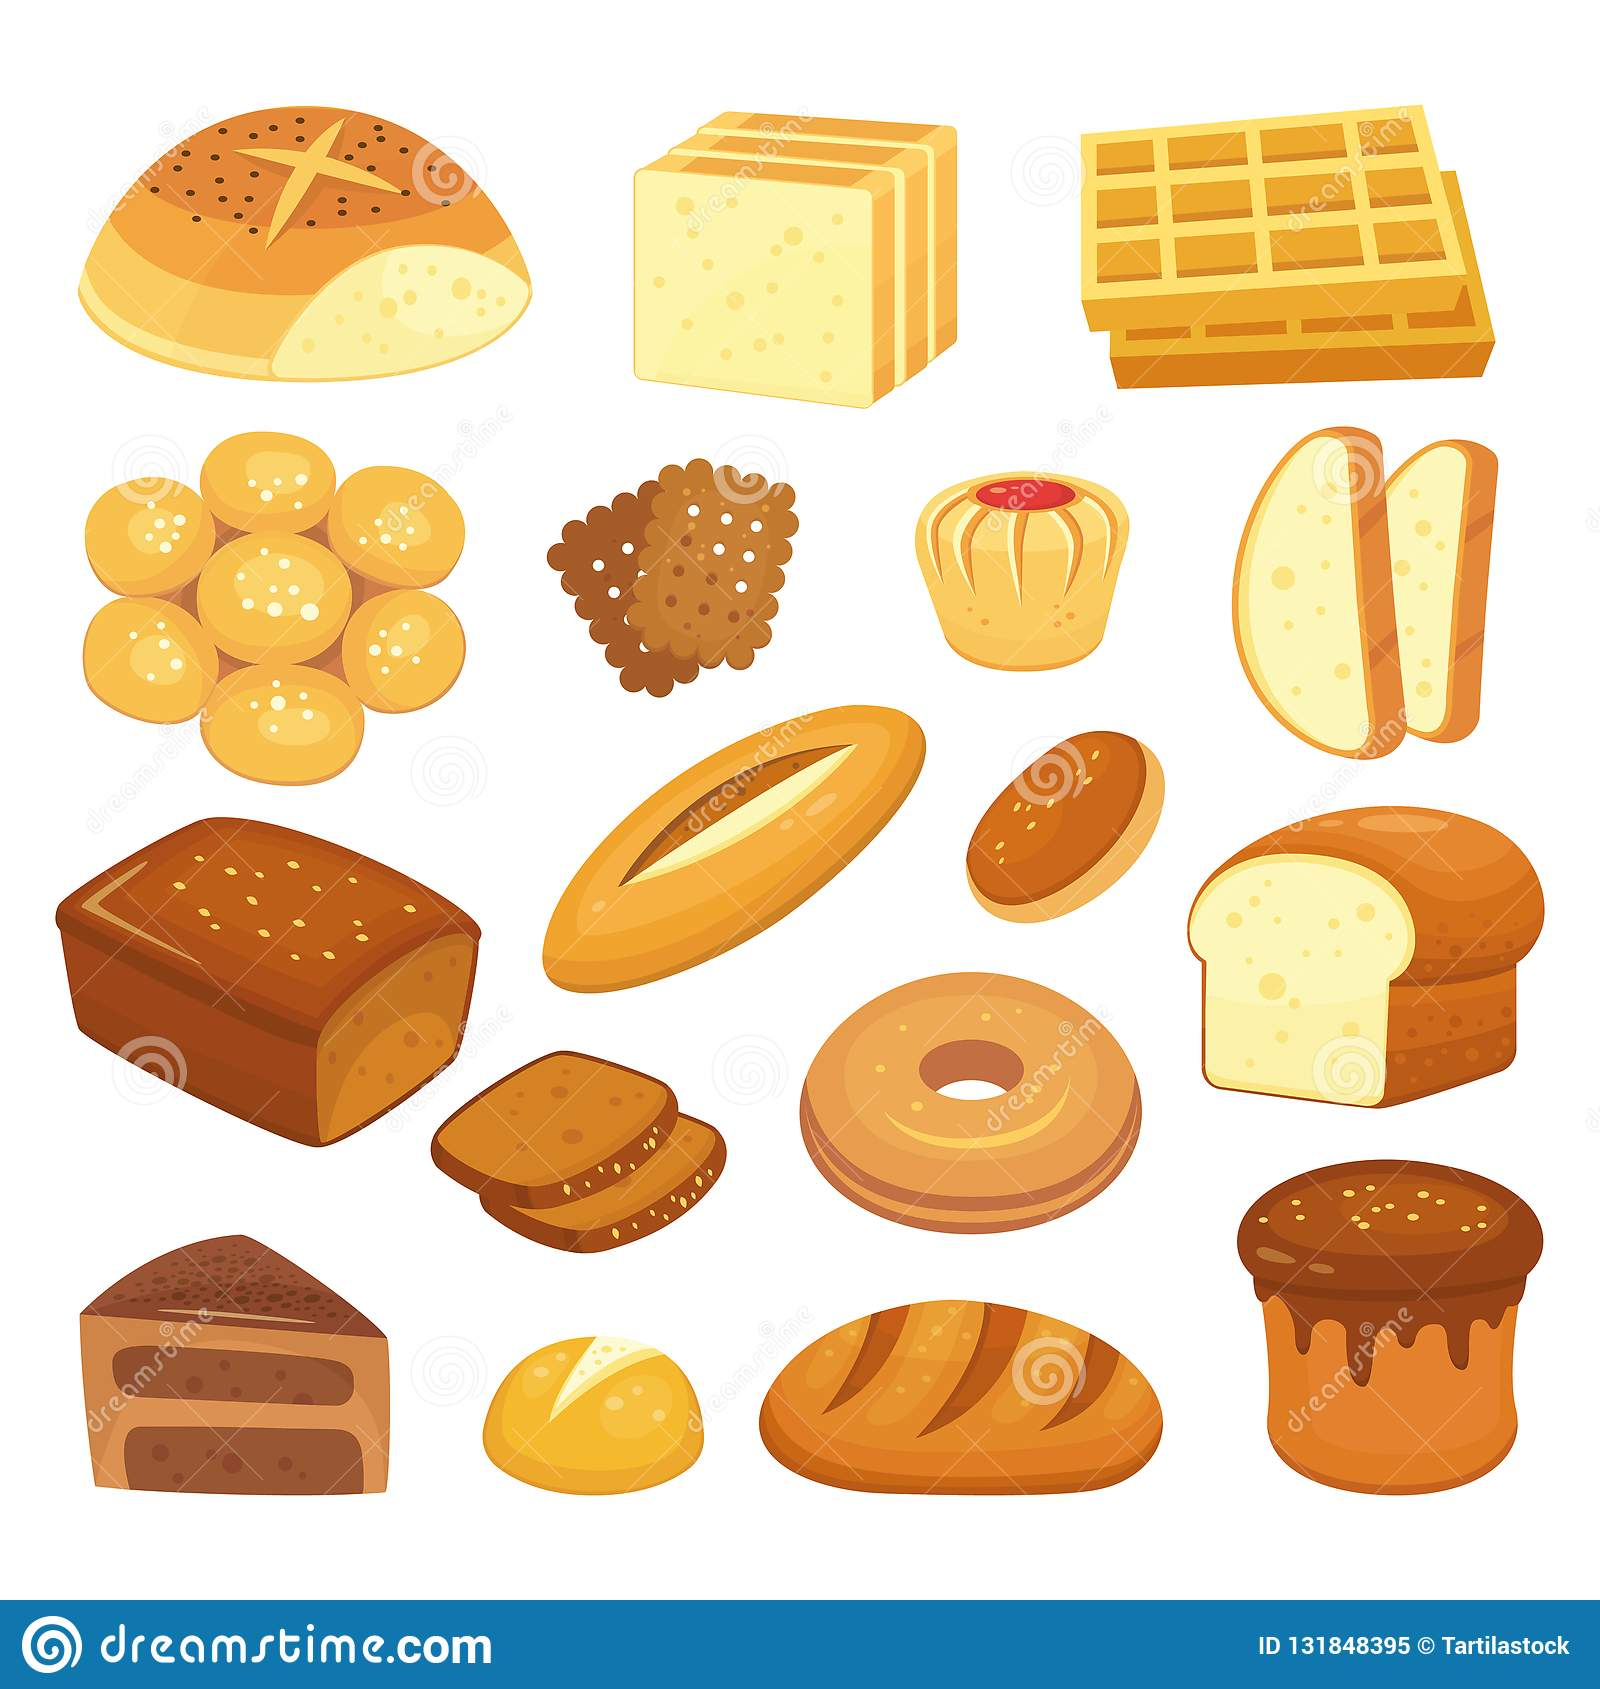 Cartoon bakery products. Toast bread, french roll and breakfast bagel. Whole grain breads, sweet bun and loaf vector